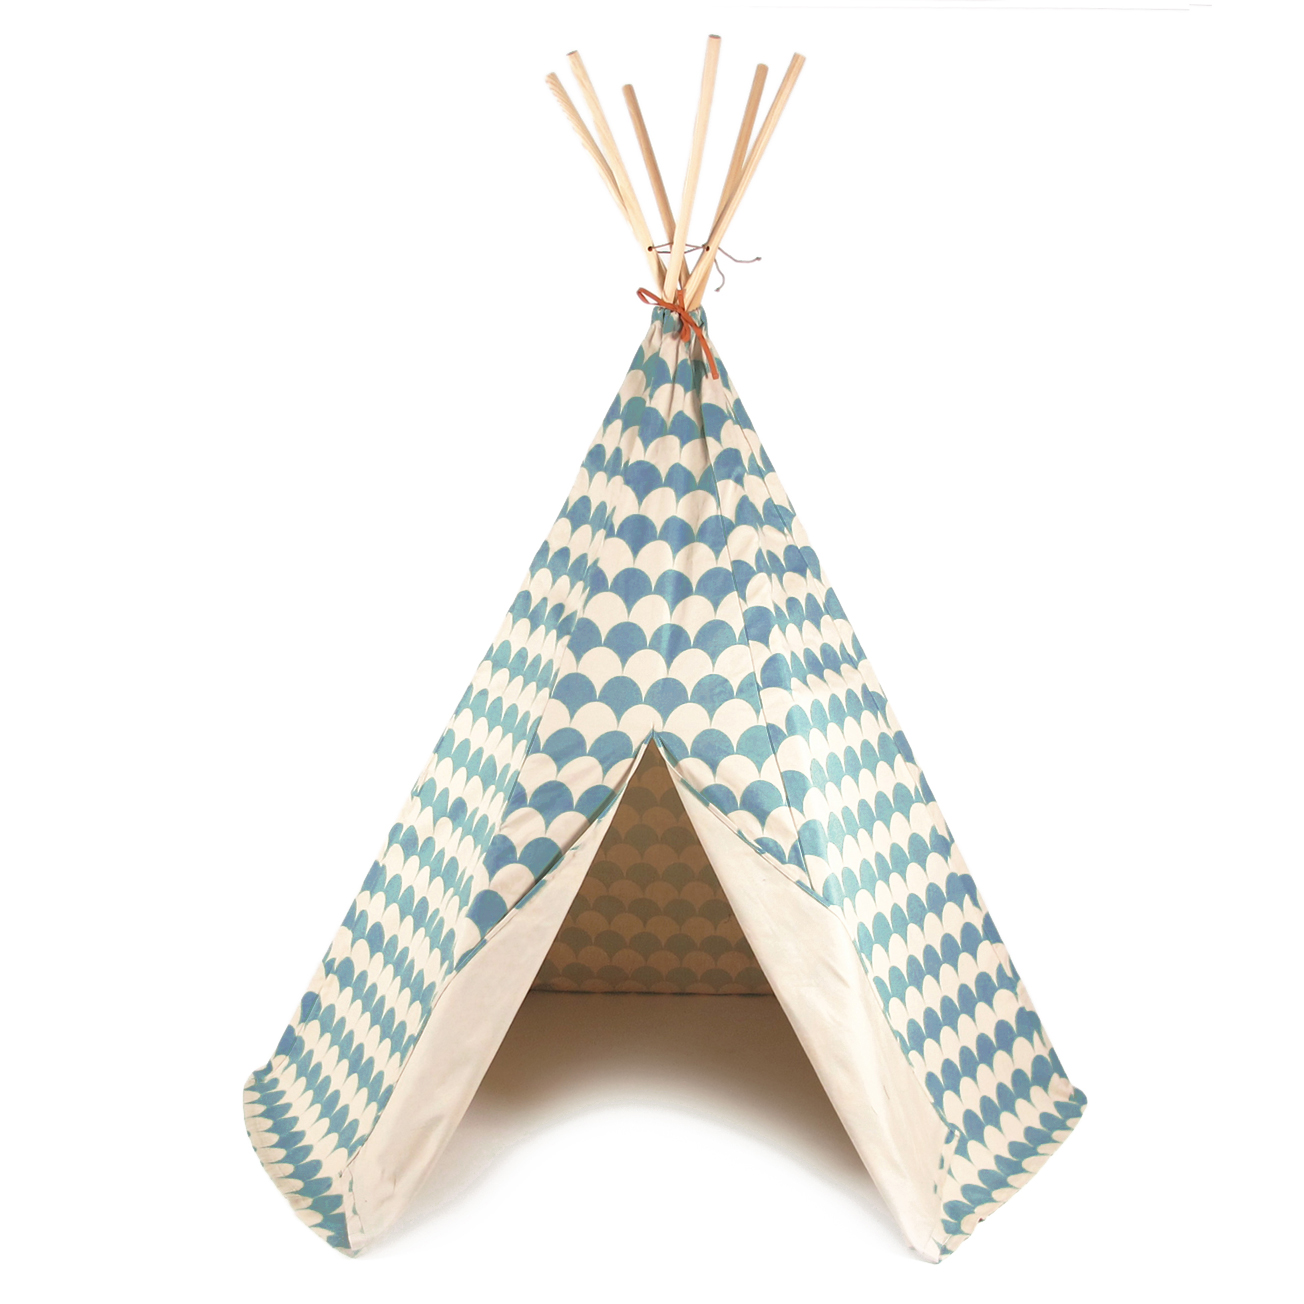 tipi arizona ecailles bleu nobodinoz pour chambre enfant. Black Bedroom Furniture Sets. Home Design Ideas